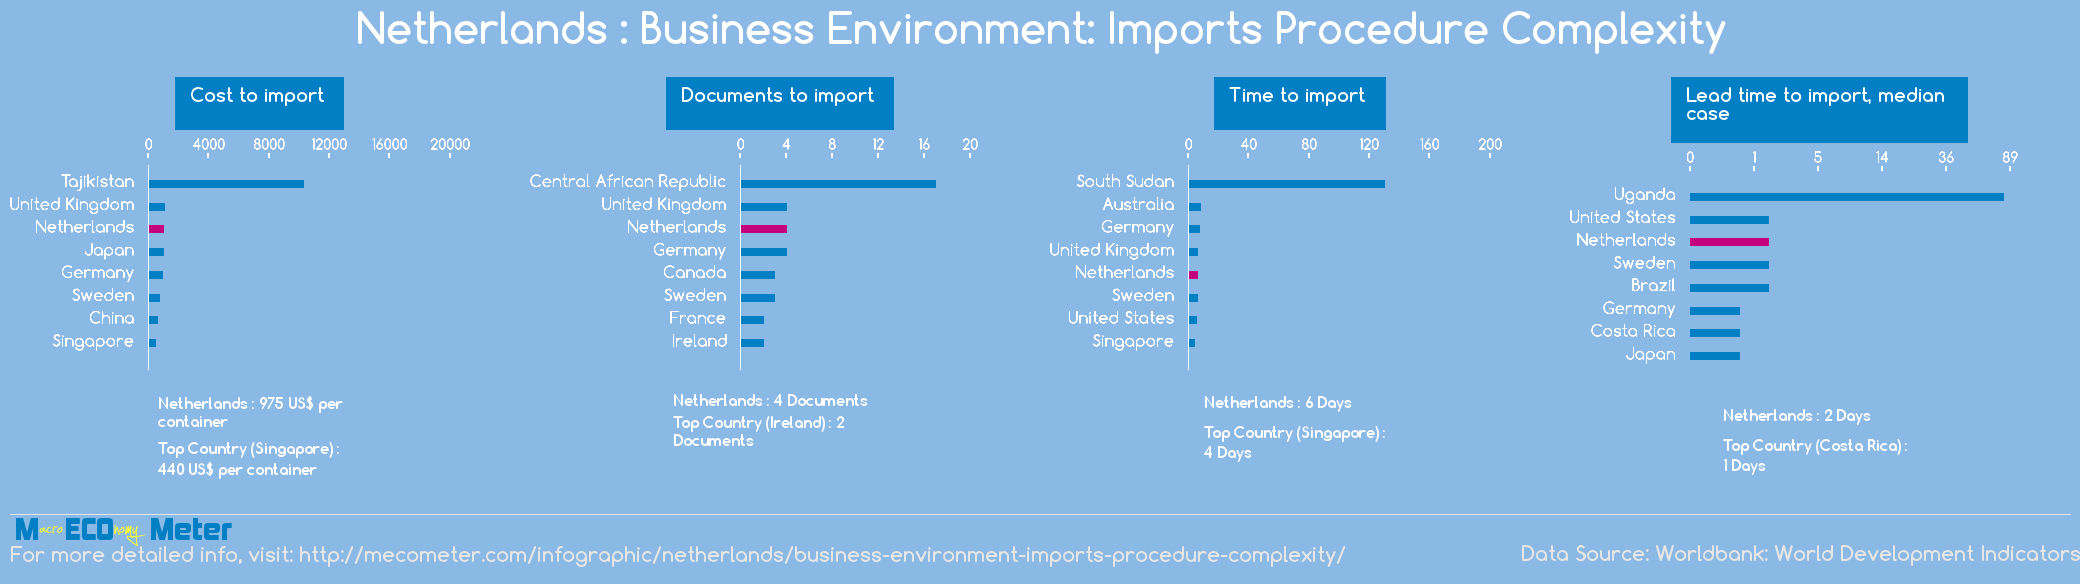 Netherlands : Business Environment: Imports Procedure Complexity